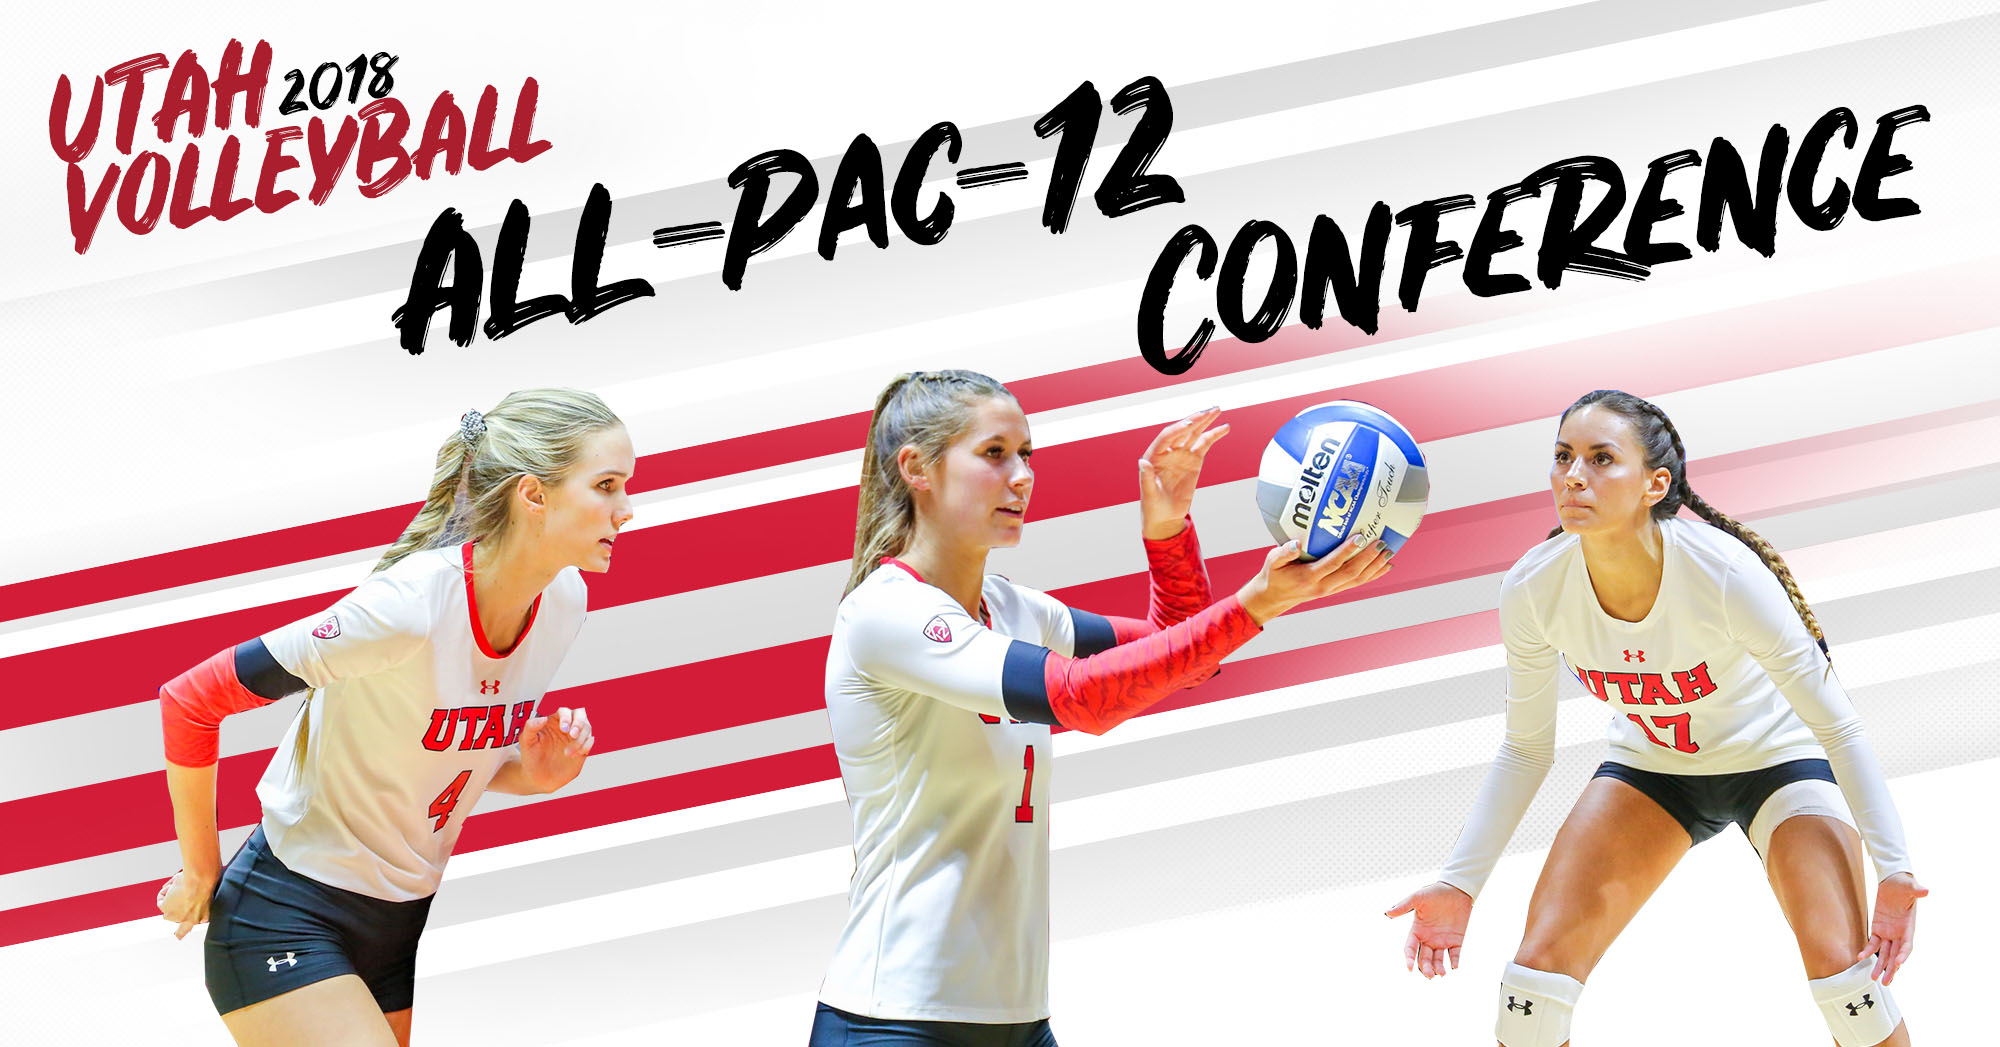 Three Utes named to Pac-12 Volleyball All-Conference Team